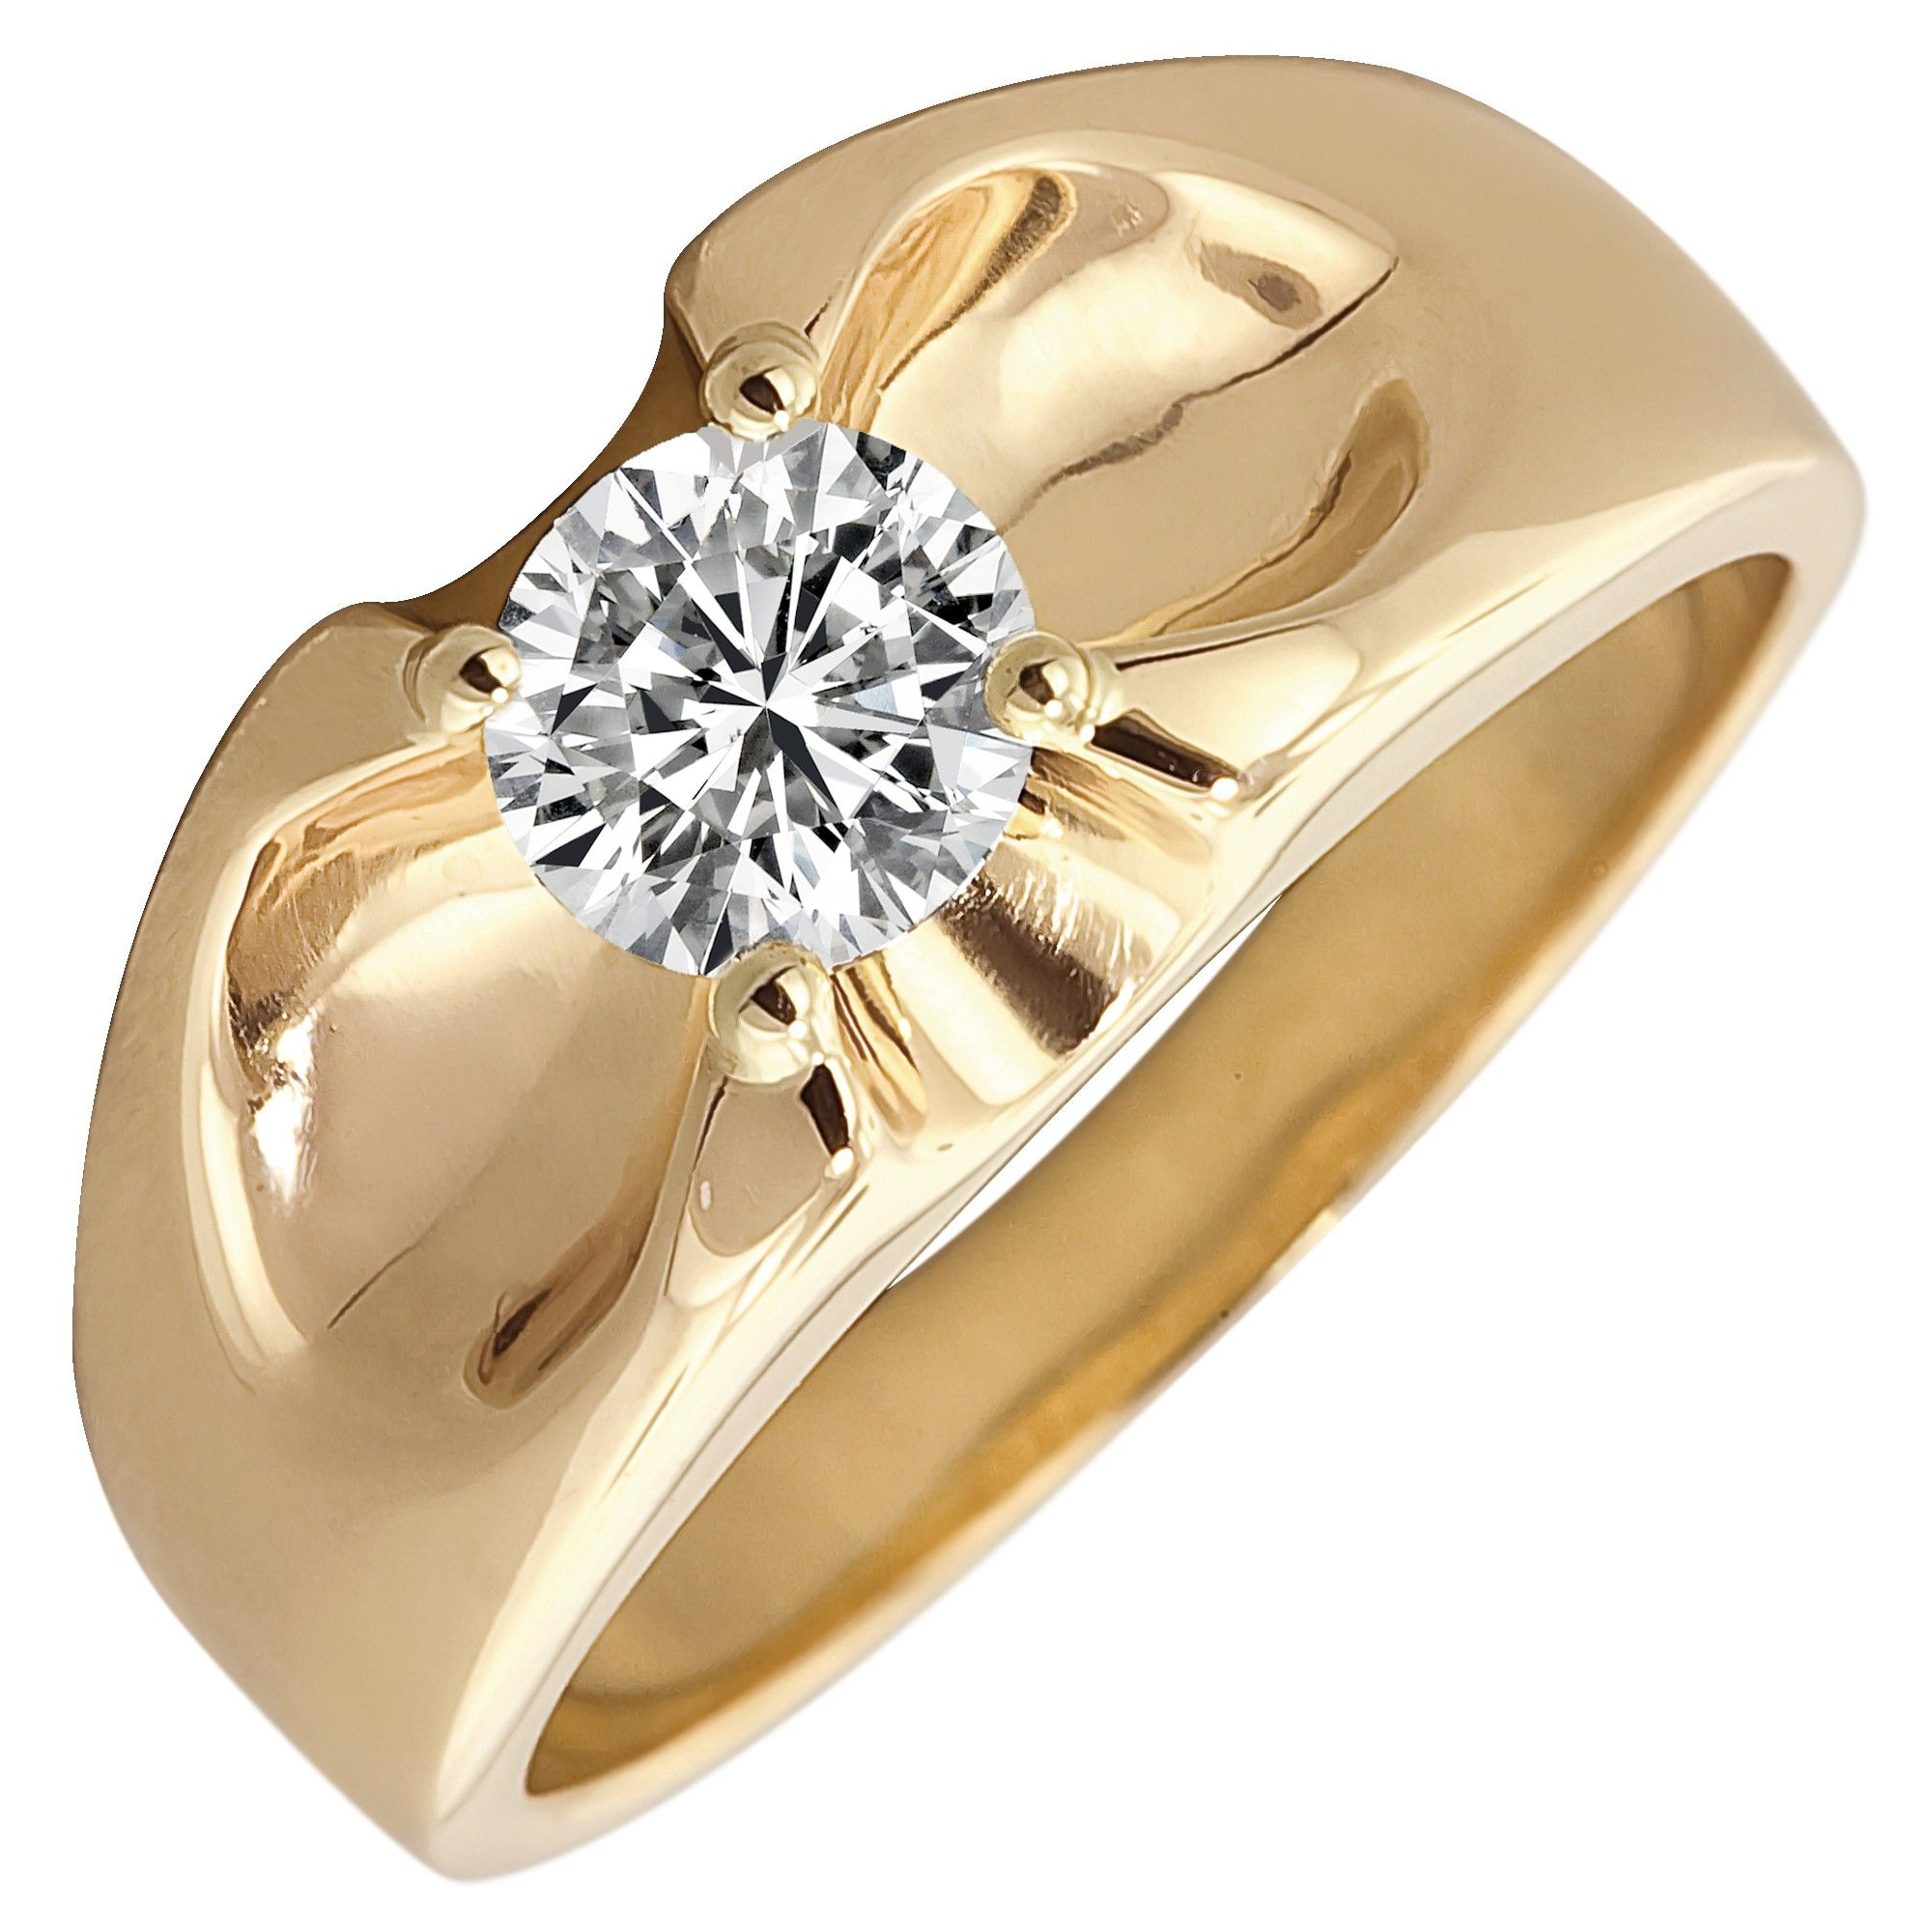 wedding rings ebay Custom Solitaire Diamond Jewelry Discover the beautiful diamond engagement rings wedding rings for him